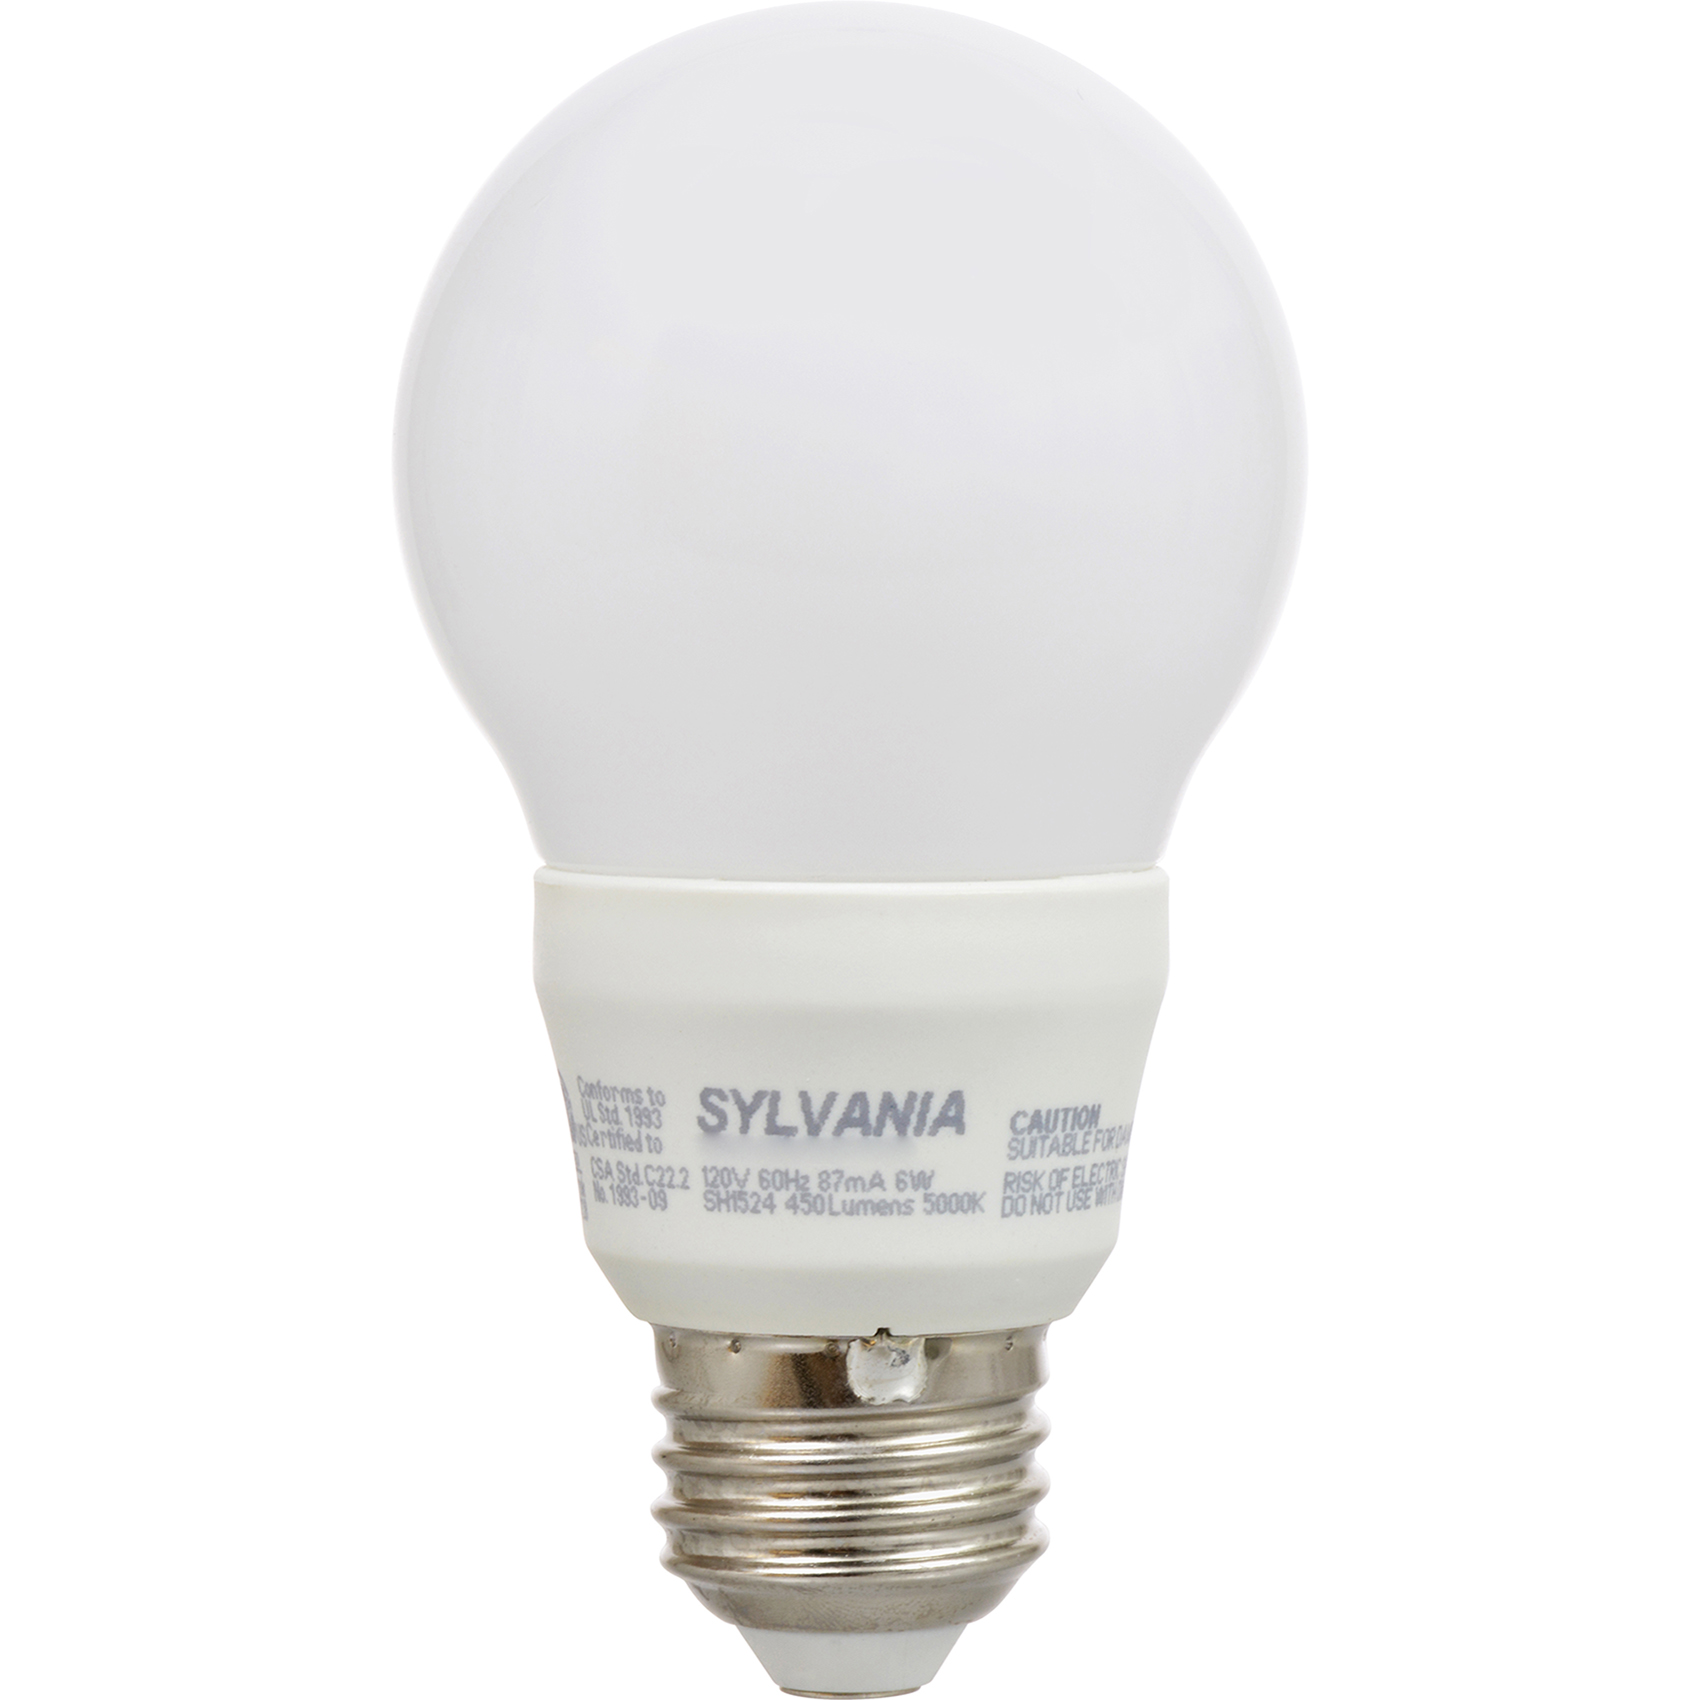 Sylvania A19 40w 120v E26 Non Dimmable White Frosted Led Light Bulb 12 Pack Ebay